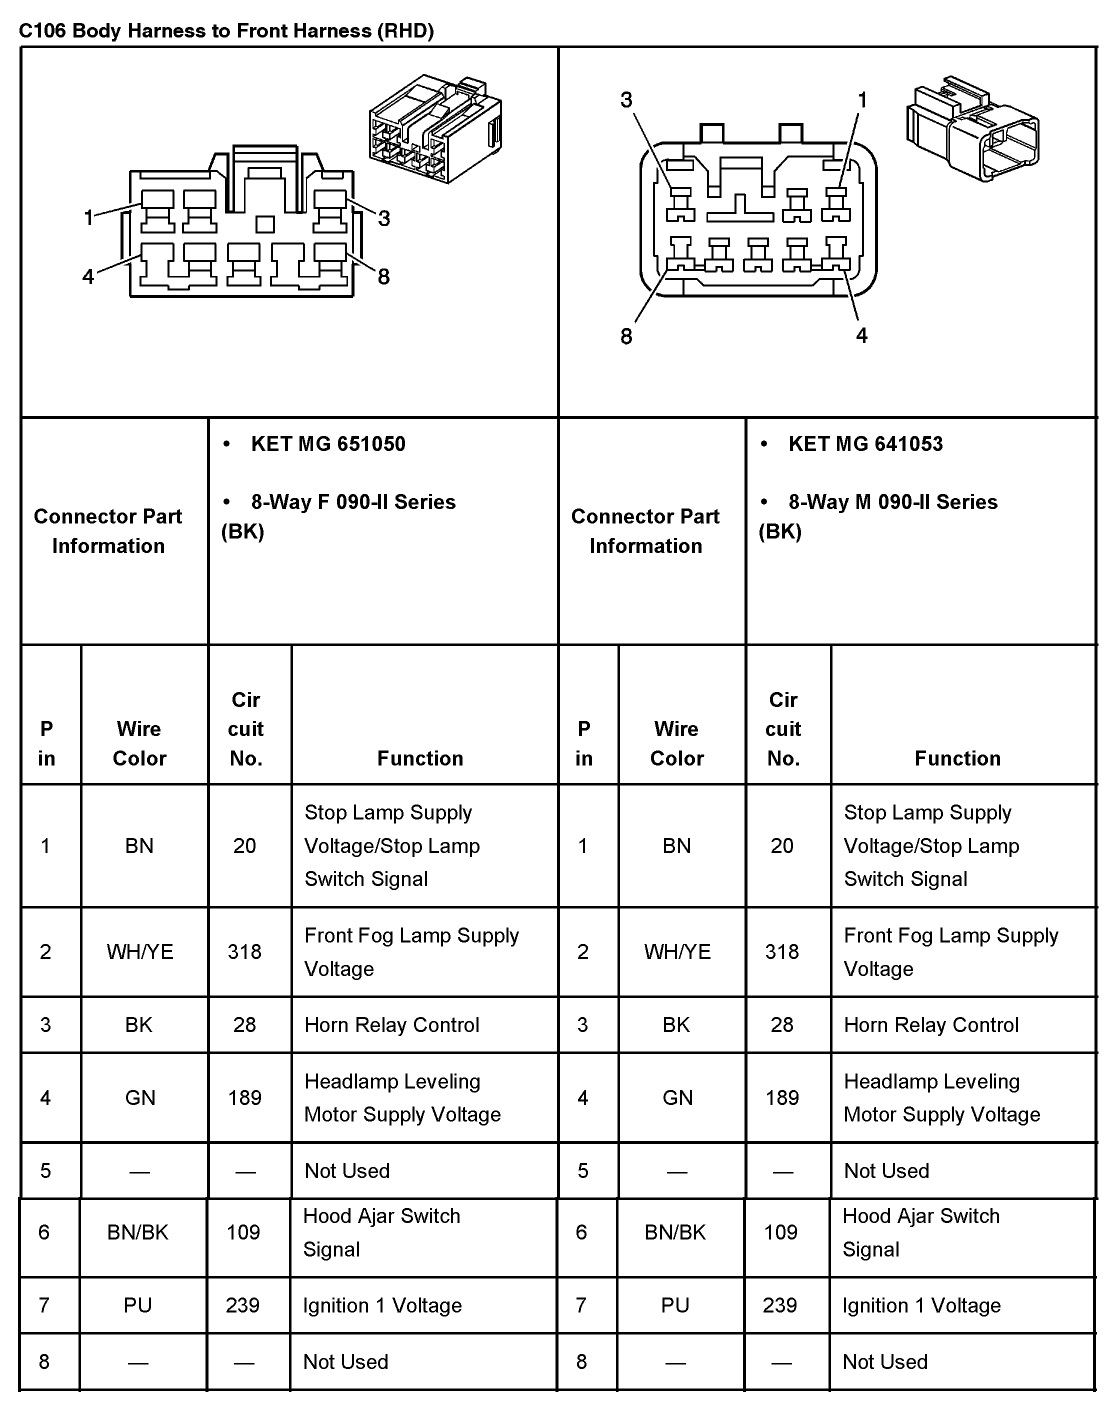 Chevy Cobalt Headlight Wiring Diagram Manual Of 2007 Engine 2005 Aveo Master Connector List And Diagrams 2006 Ss